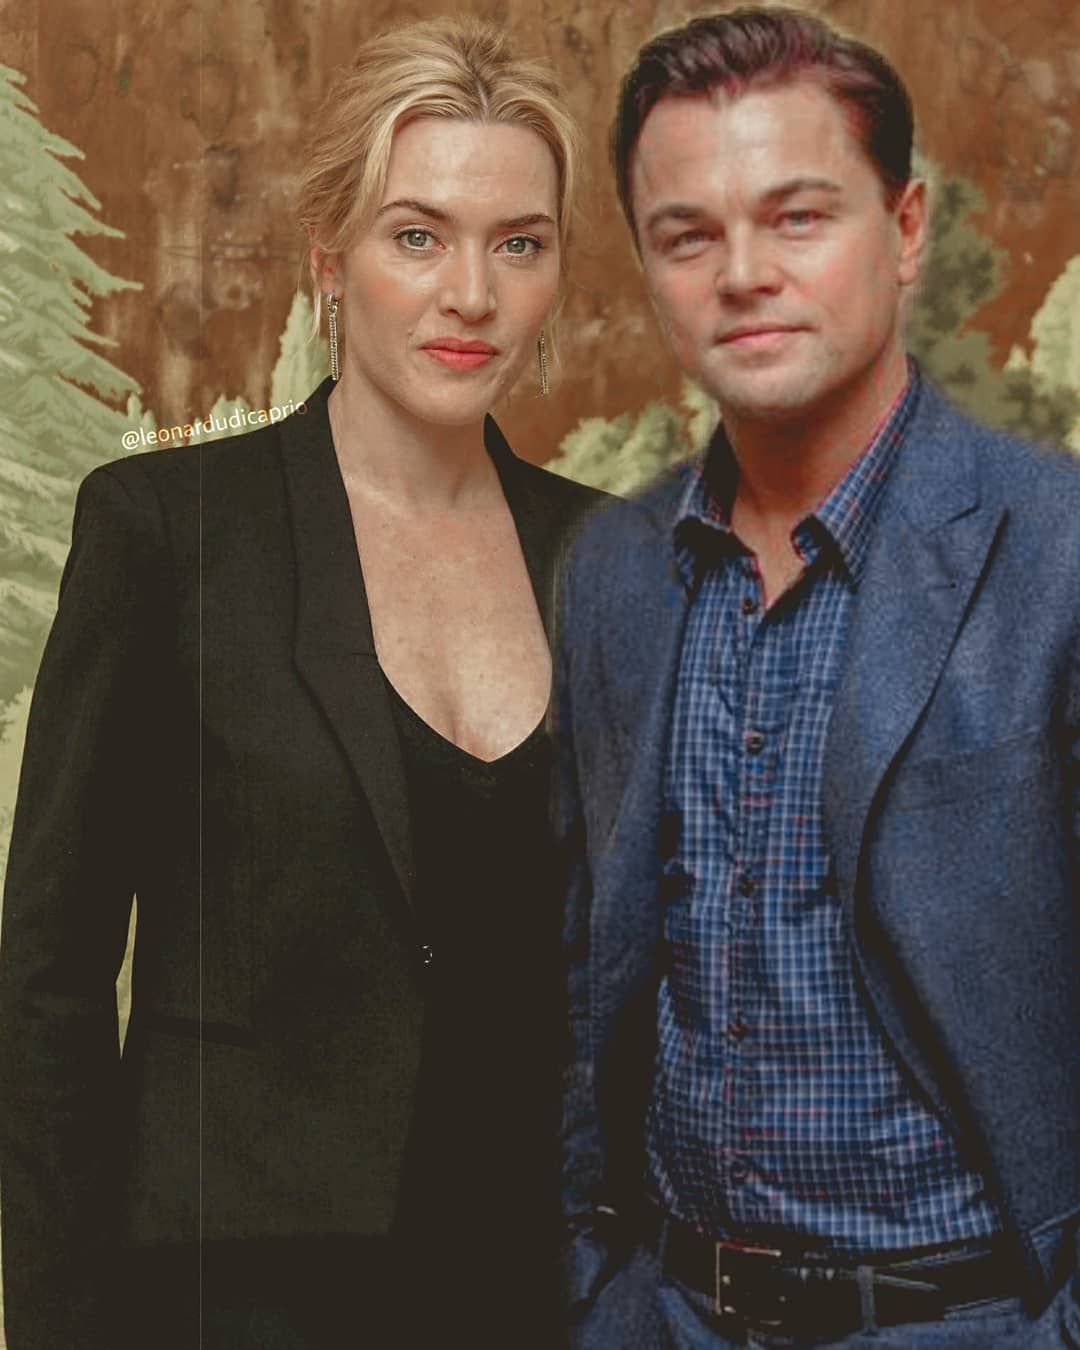 Leonardo Dicaprio On Instagram I Know This Is Horrible But I Had Nothing To Do And I Ended Up Creating This L Leonardo Dicaprio Leonardo Kate Winslet